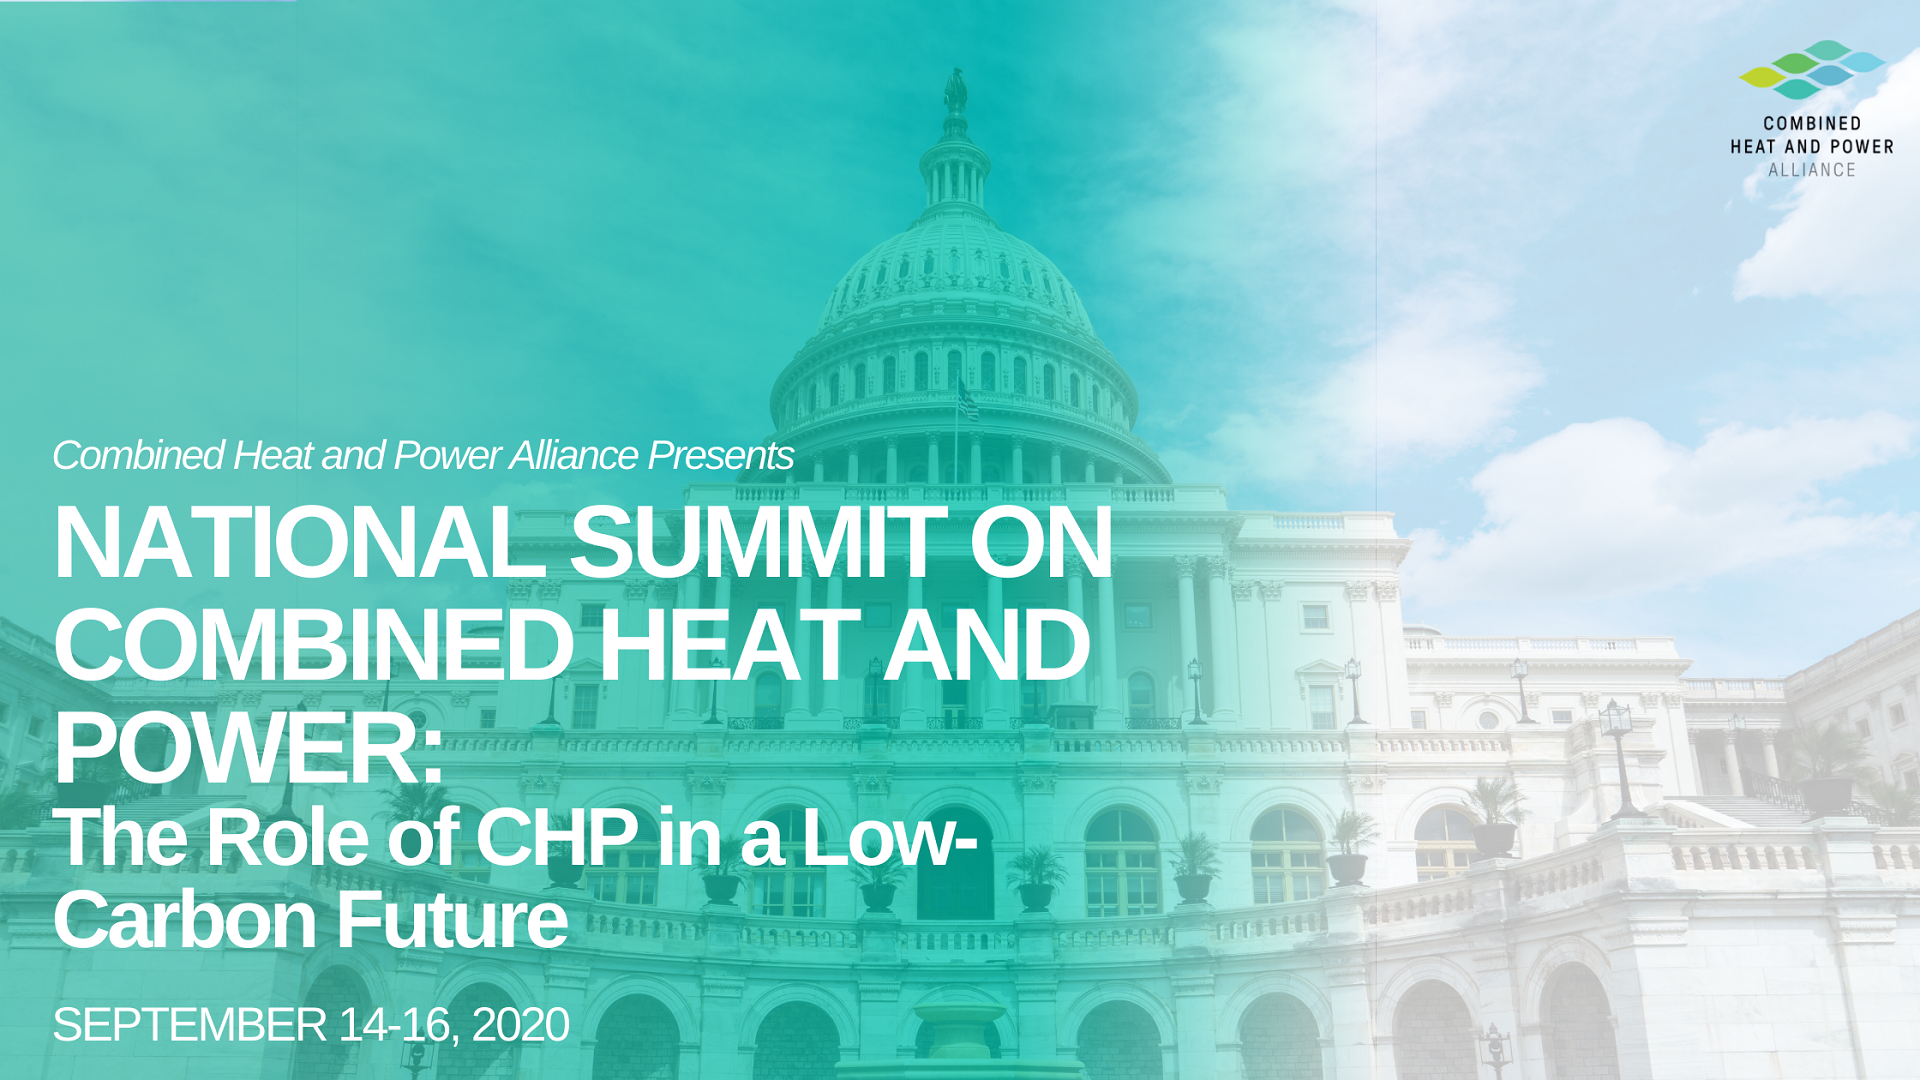 CHP Alliance's vision for the future at the National Summit: +25% installed capacity by 2030 in the USA